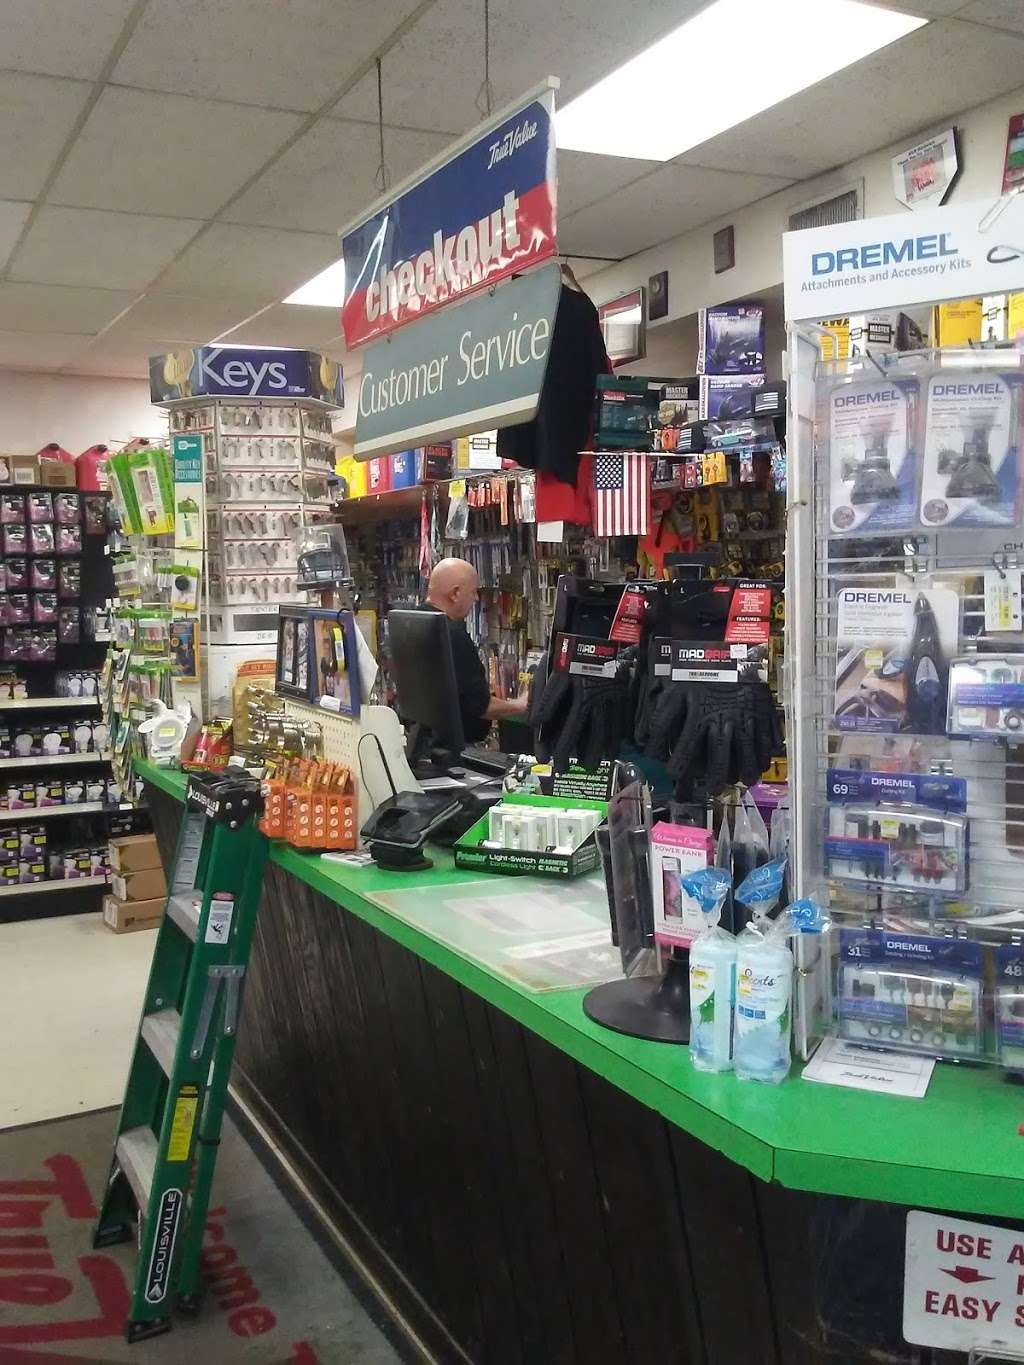 B & B True Value Hardware - hardware store  | Photo 3 of 10 | Address: 611 State Rd, Croydon, PA 19021, USA | Phone: (215) 785-3643